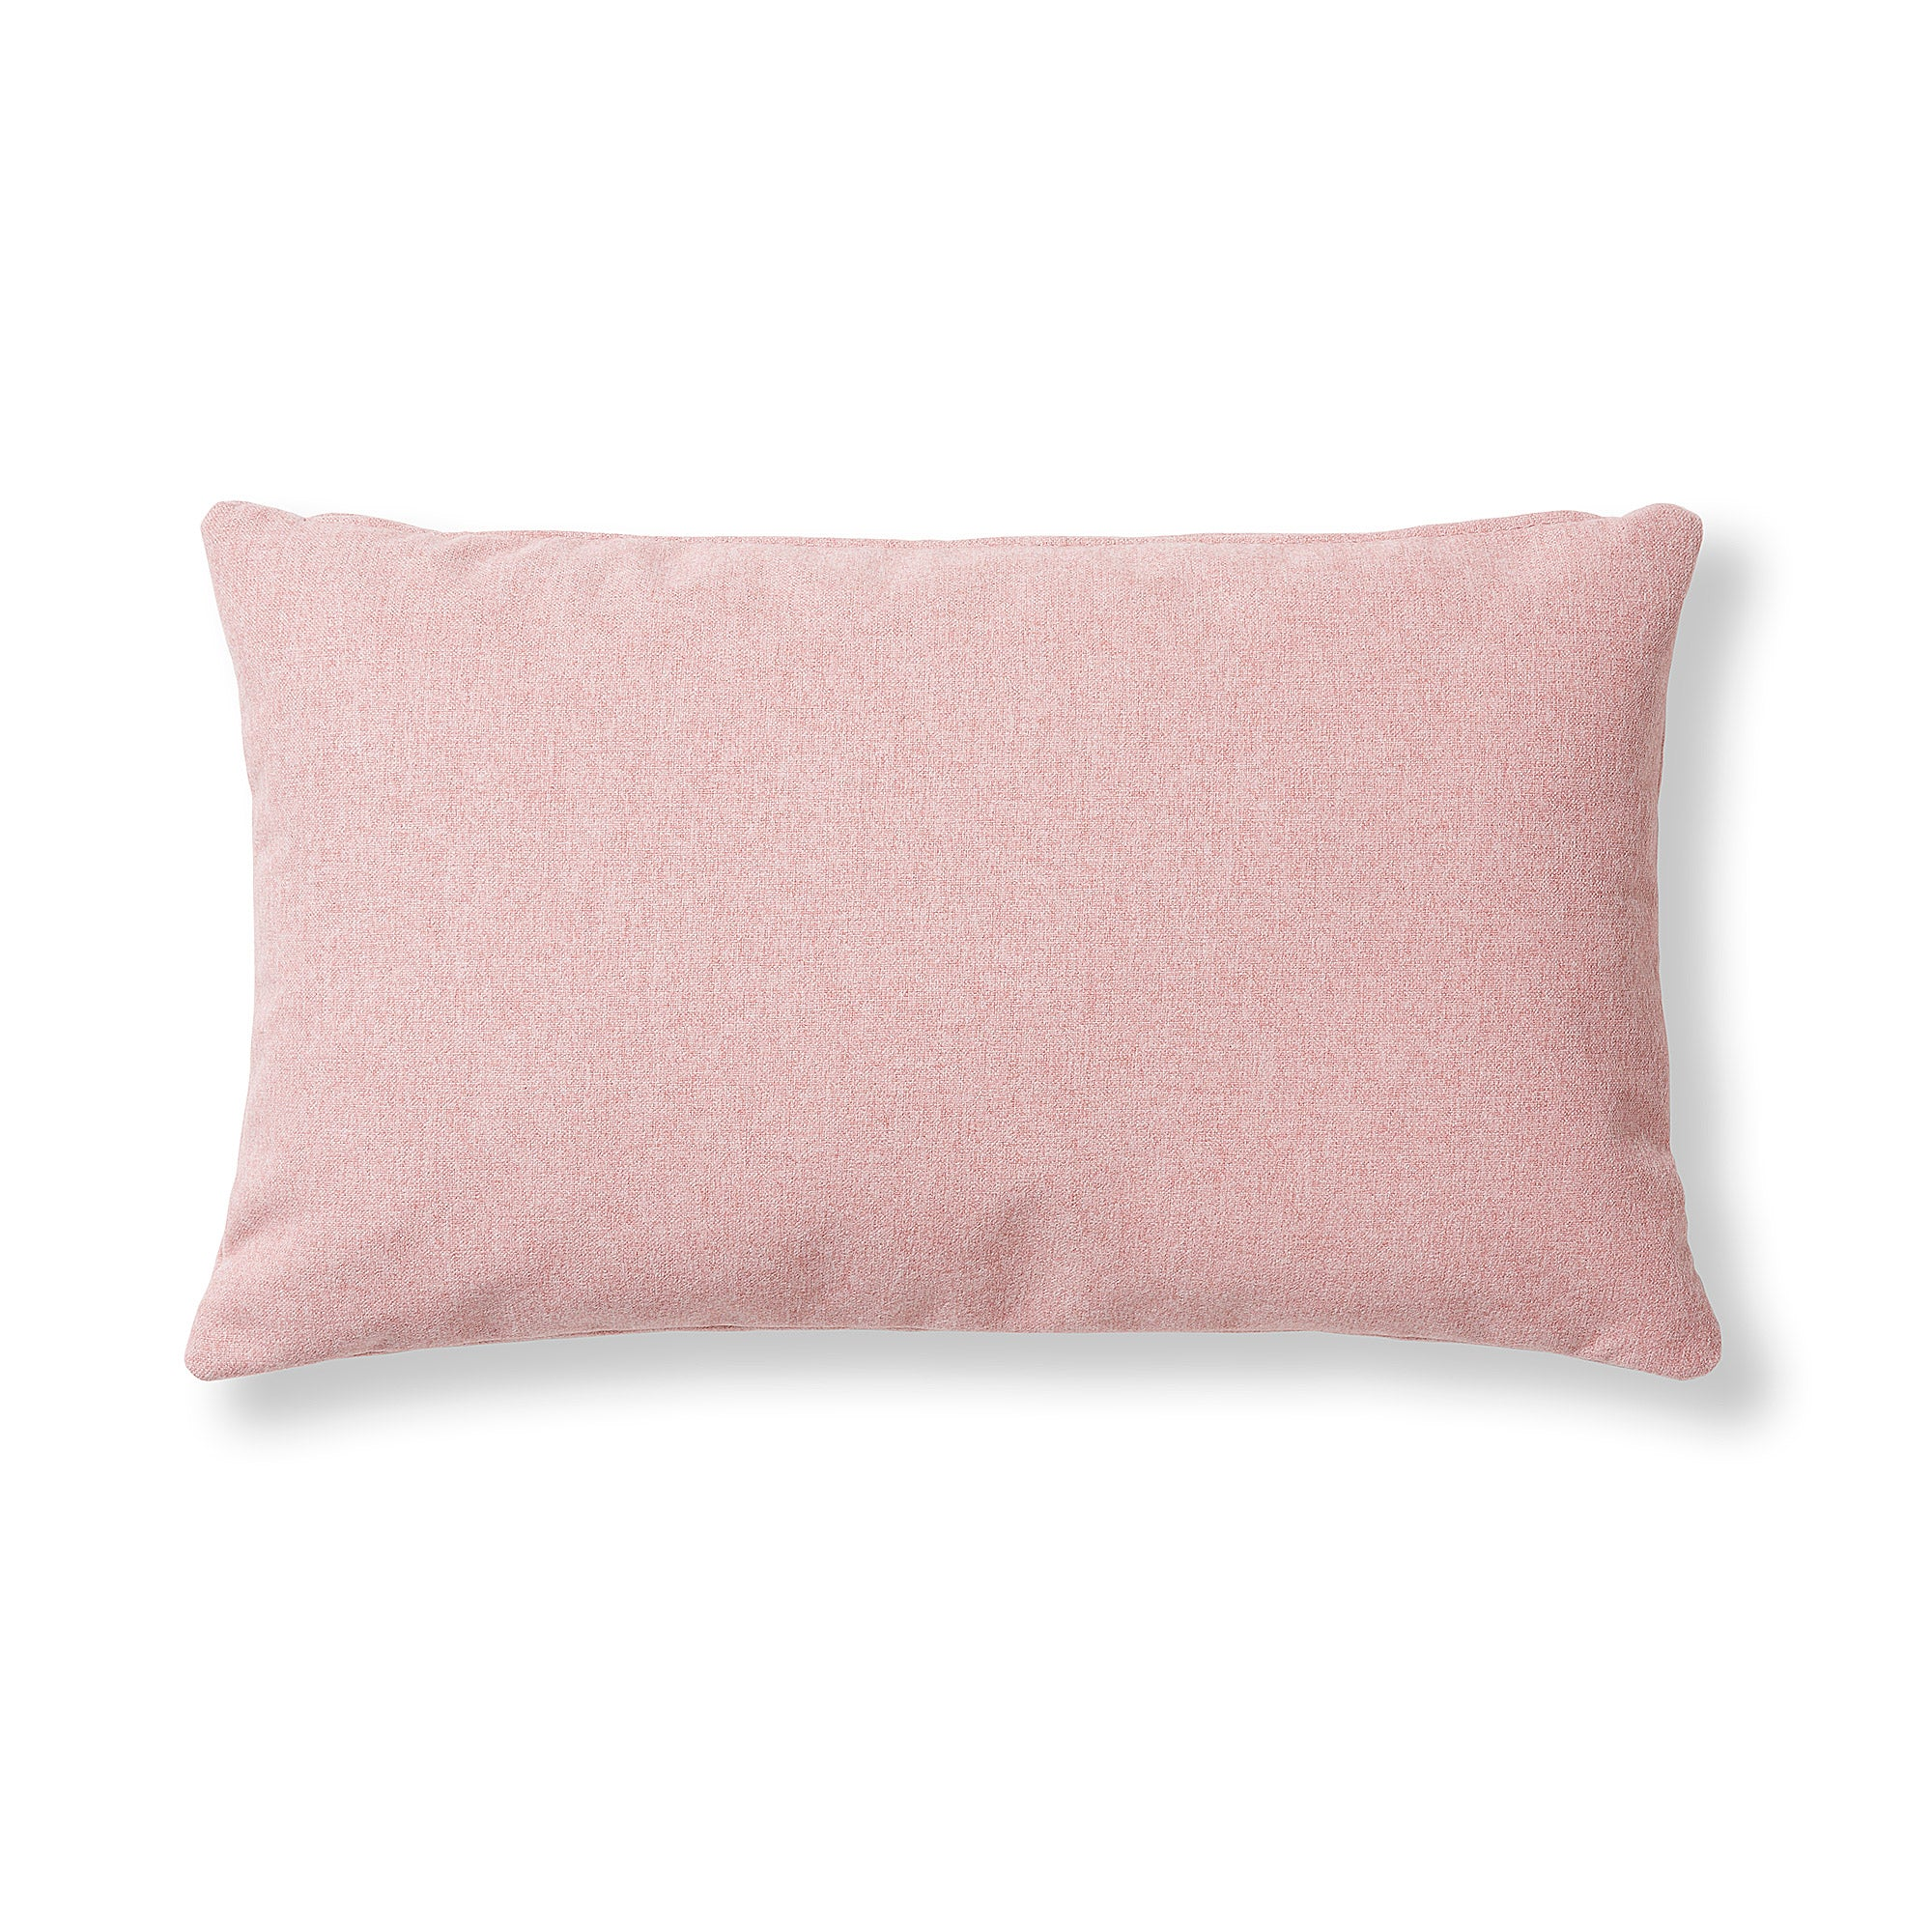 Minda Cushion 30x50 fabric pink, Decor - Home-Buy Interiors